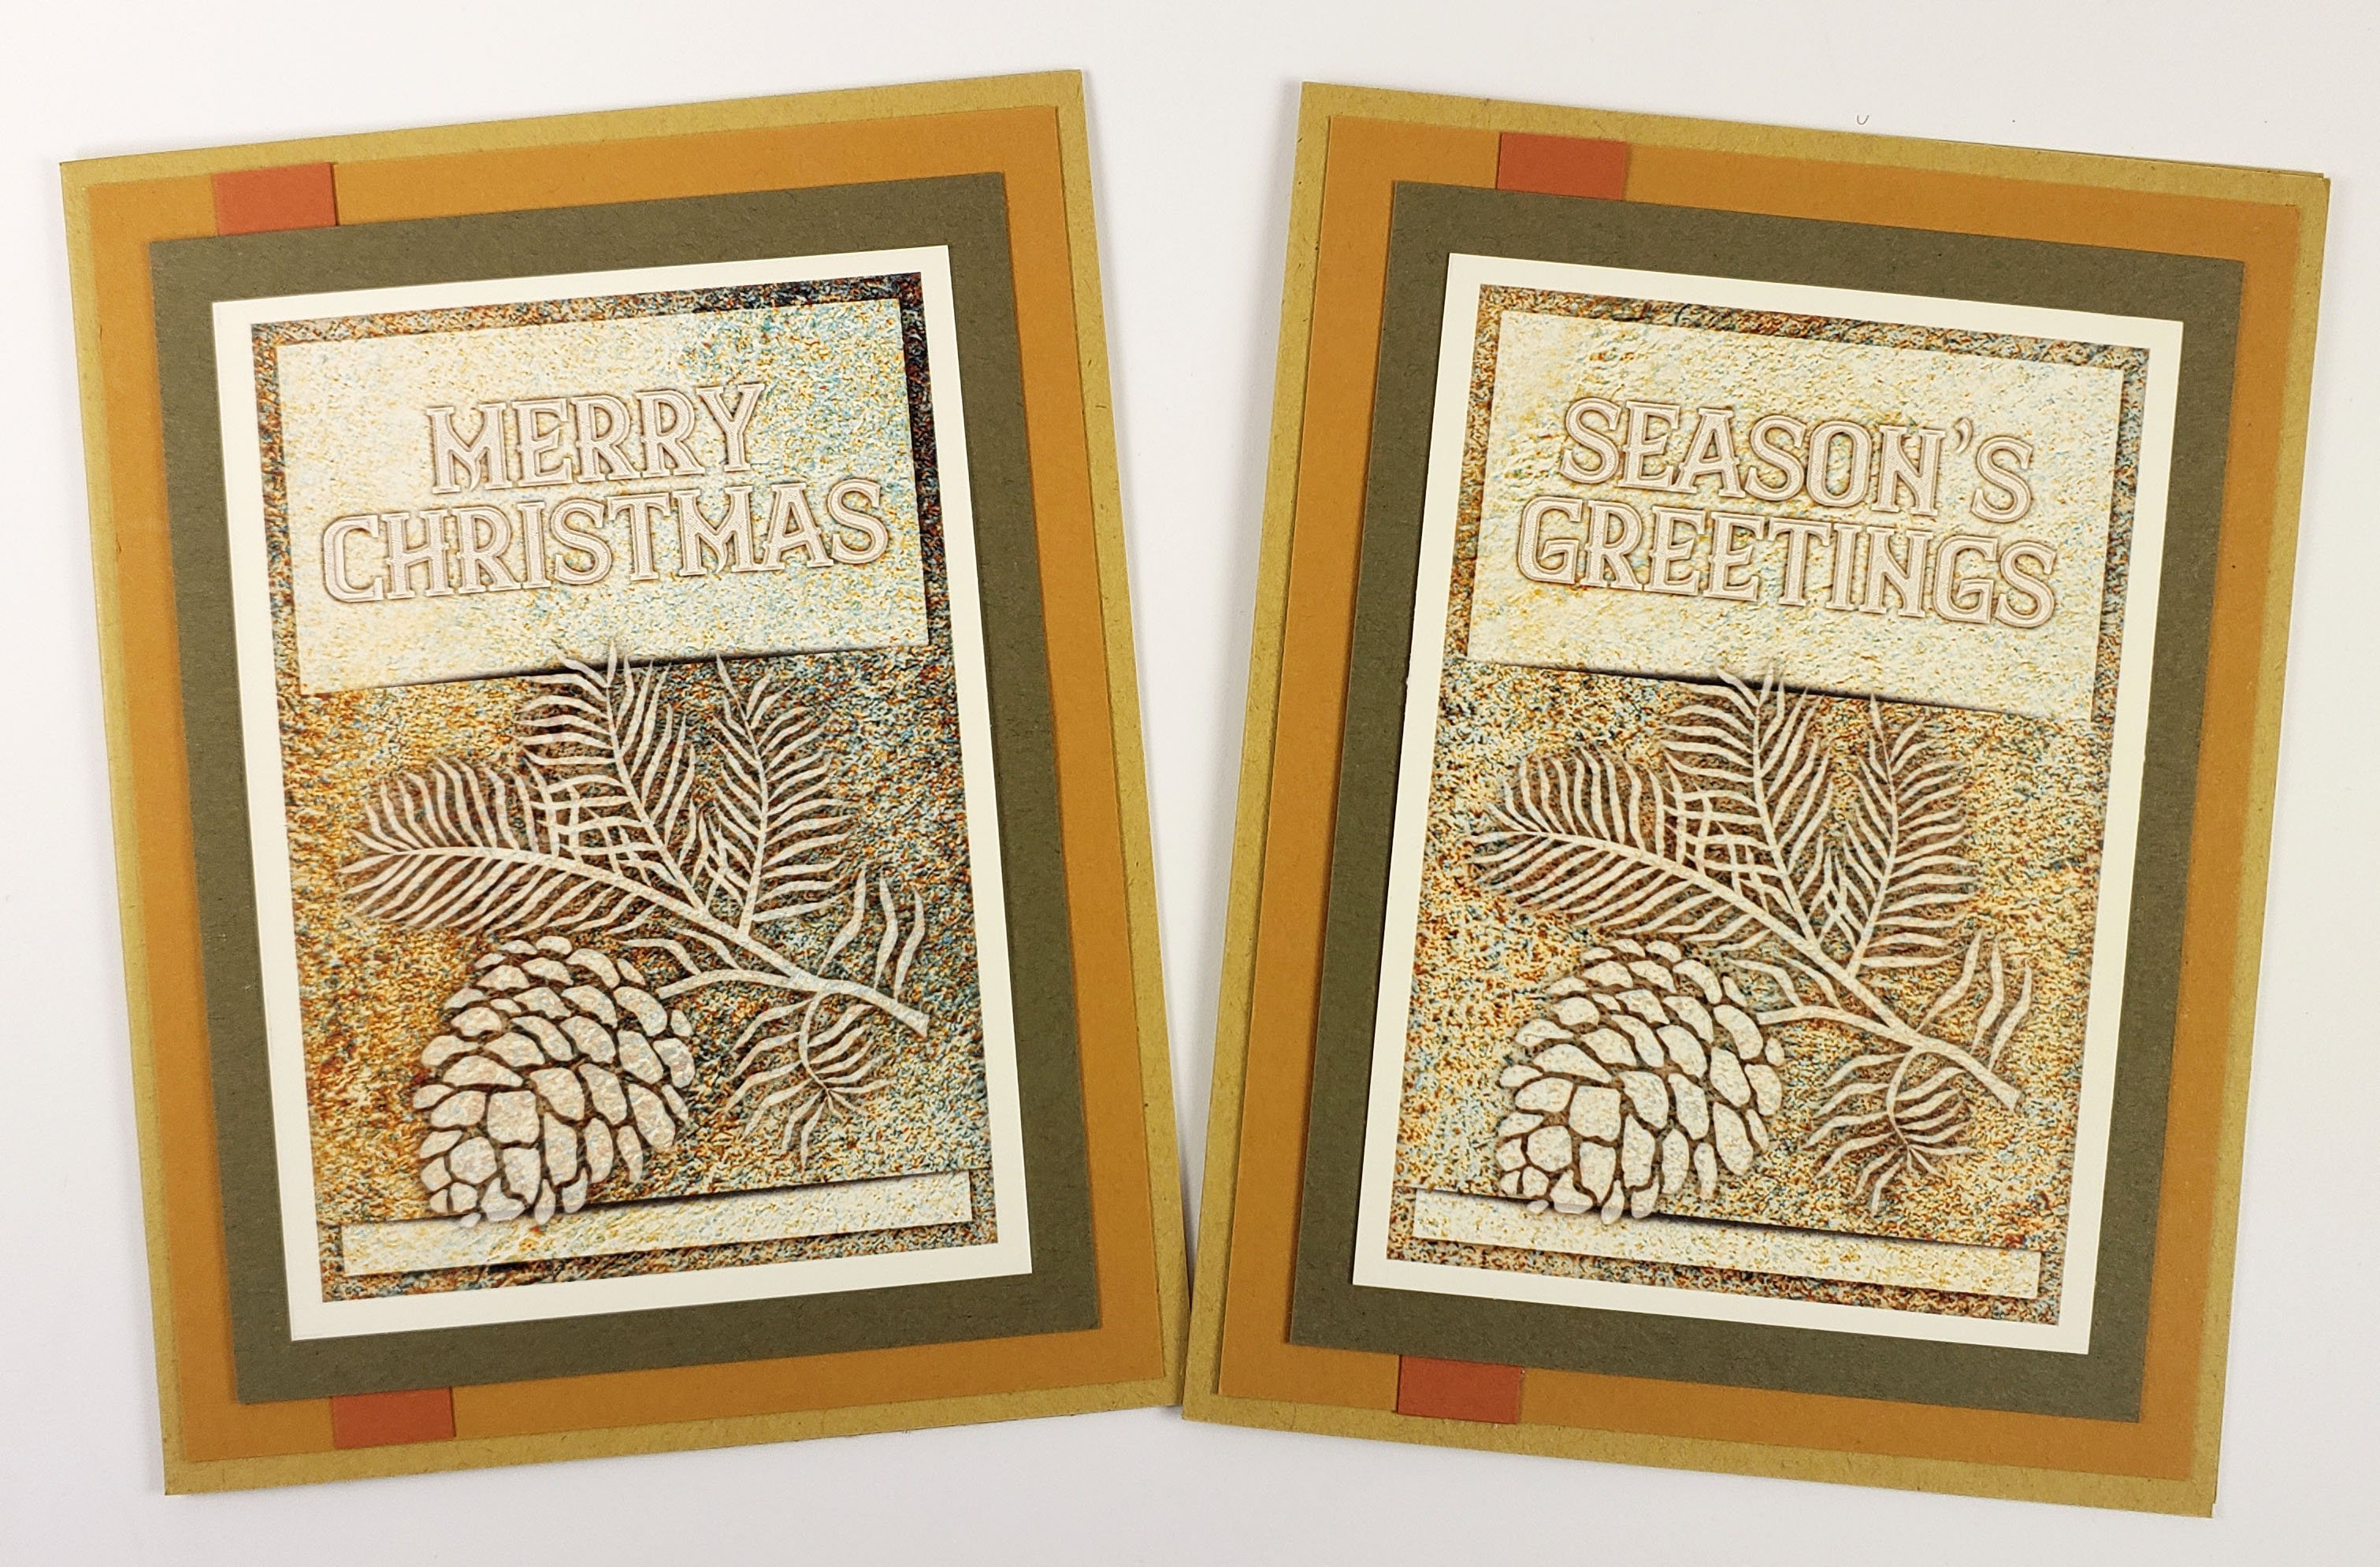 Lodge Christmas cards in non-traditional colors.